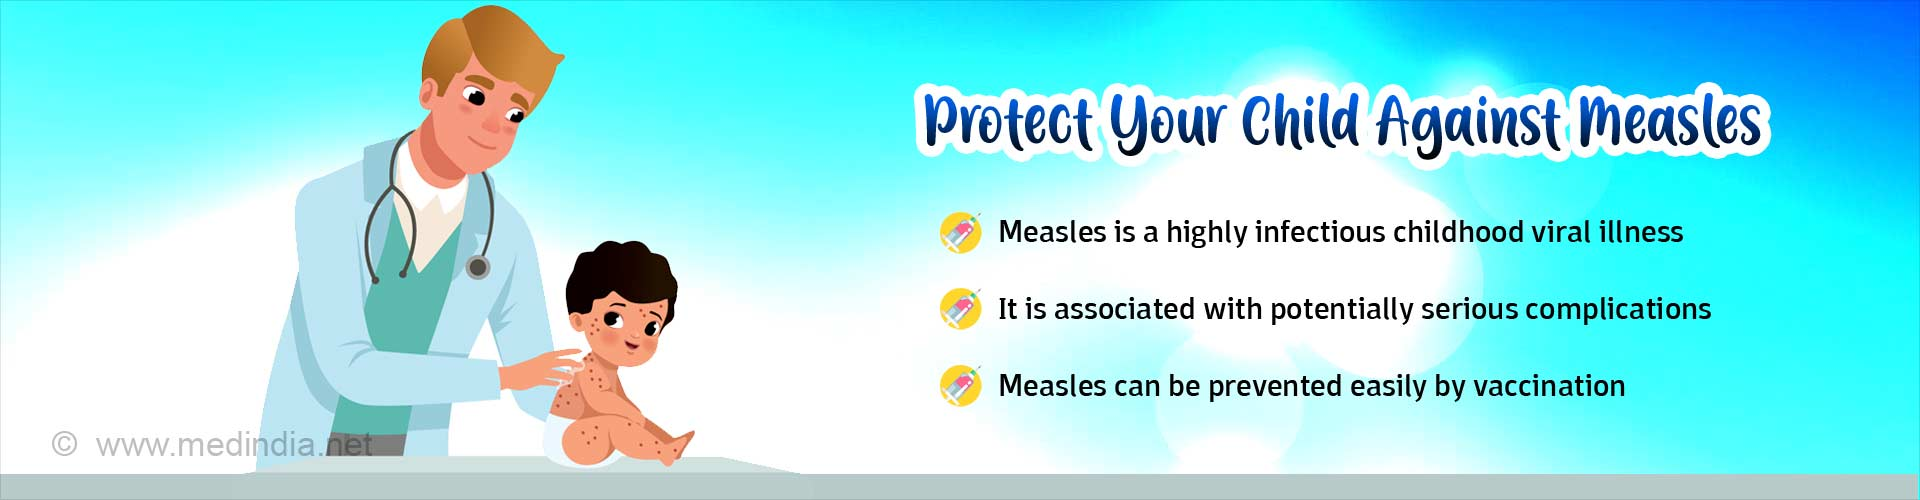 Vaccination: The Best Prevention Method for Measles